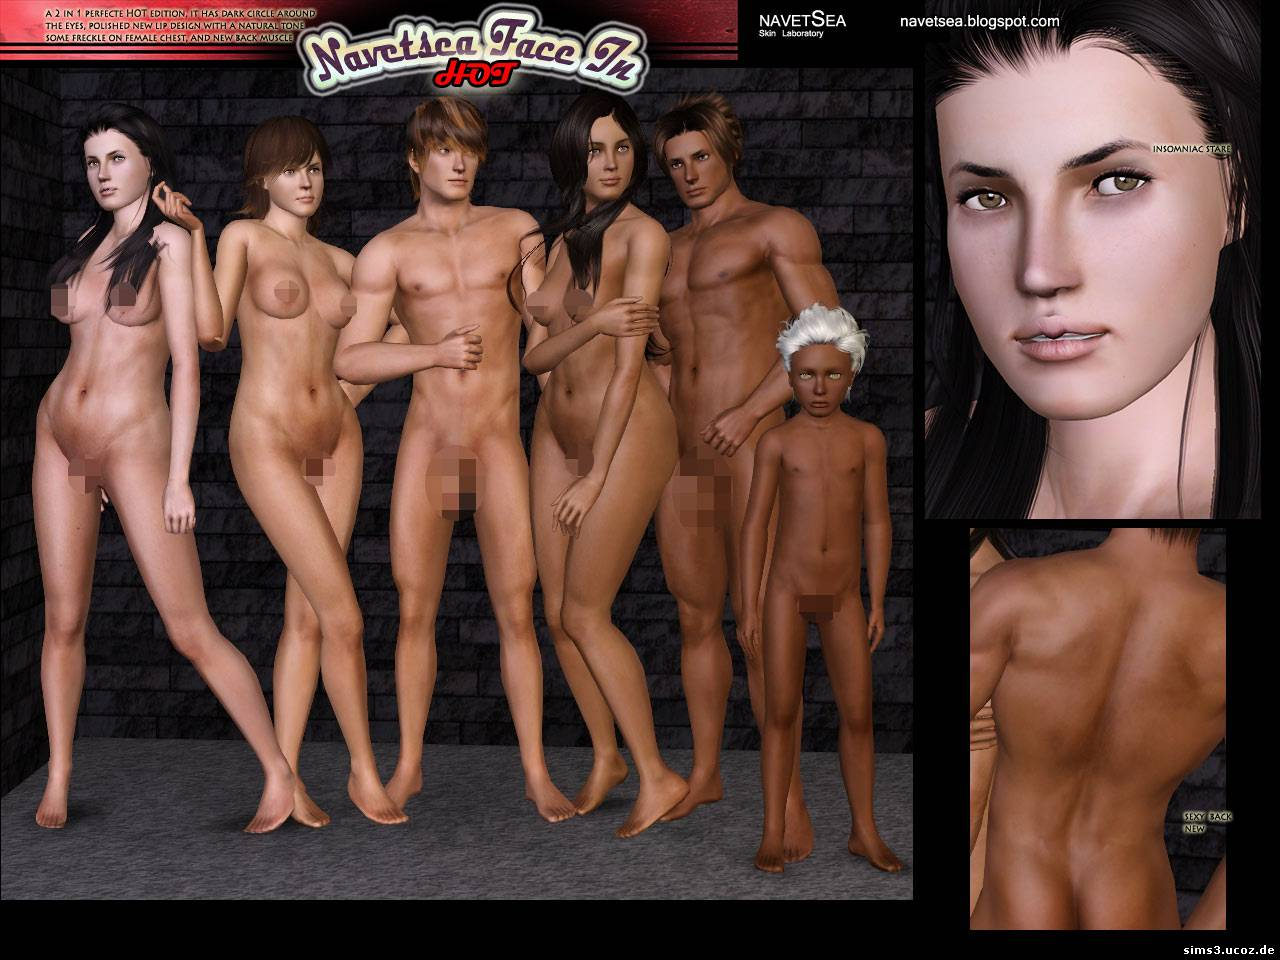 Sims 3 naked sims hentia movie